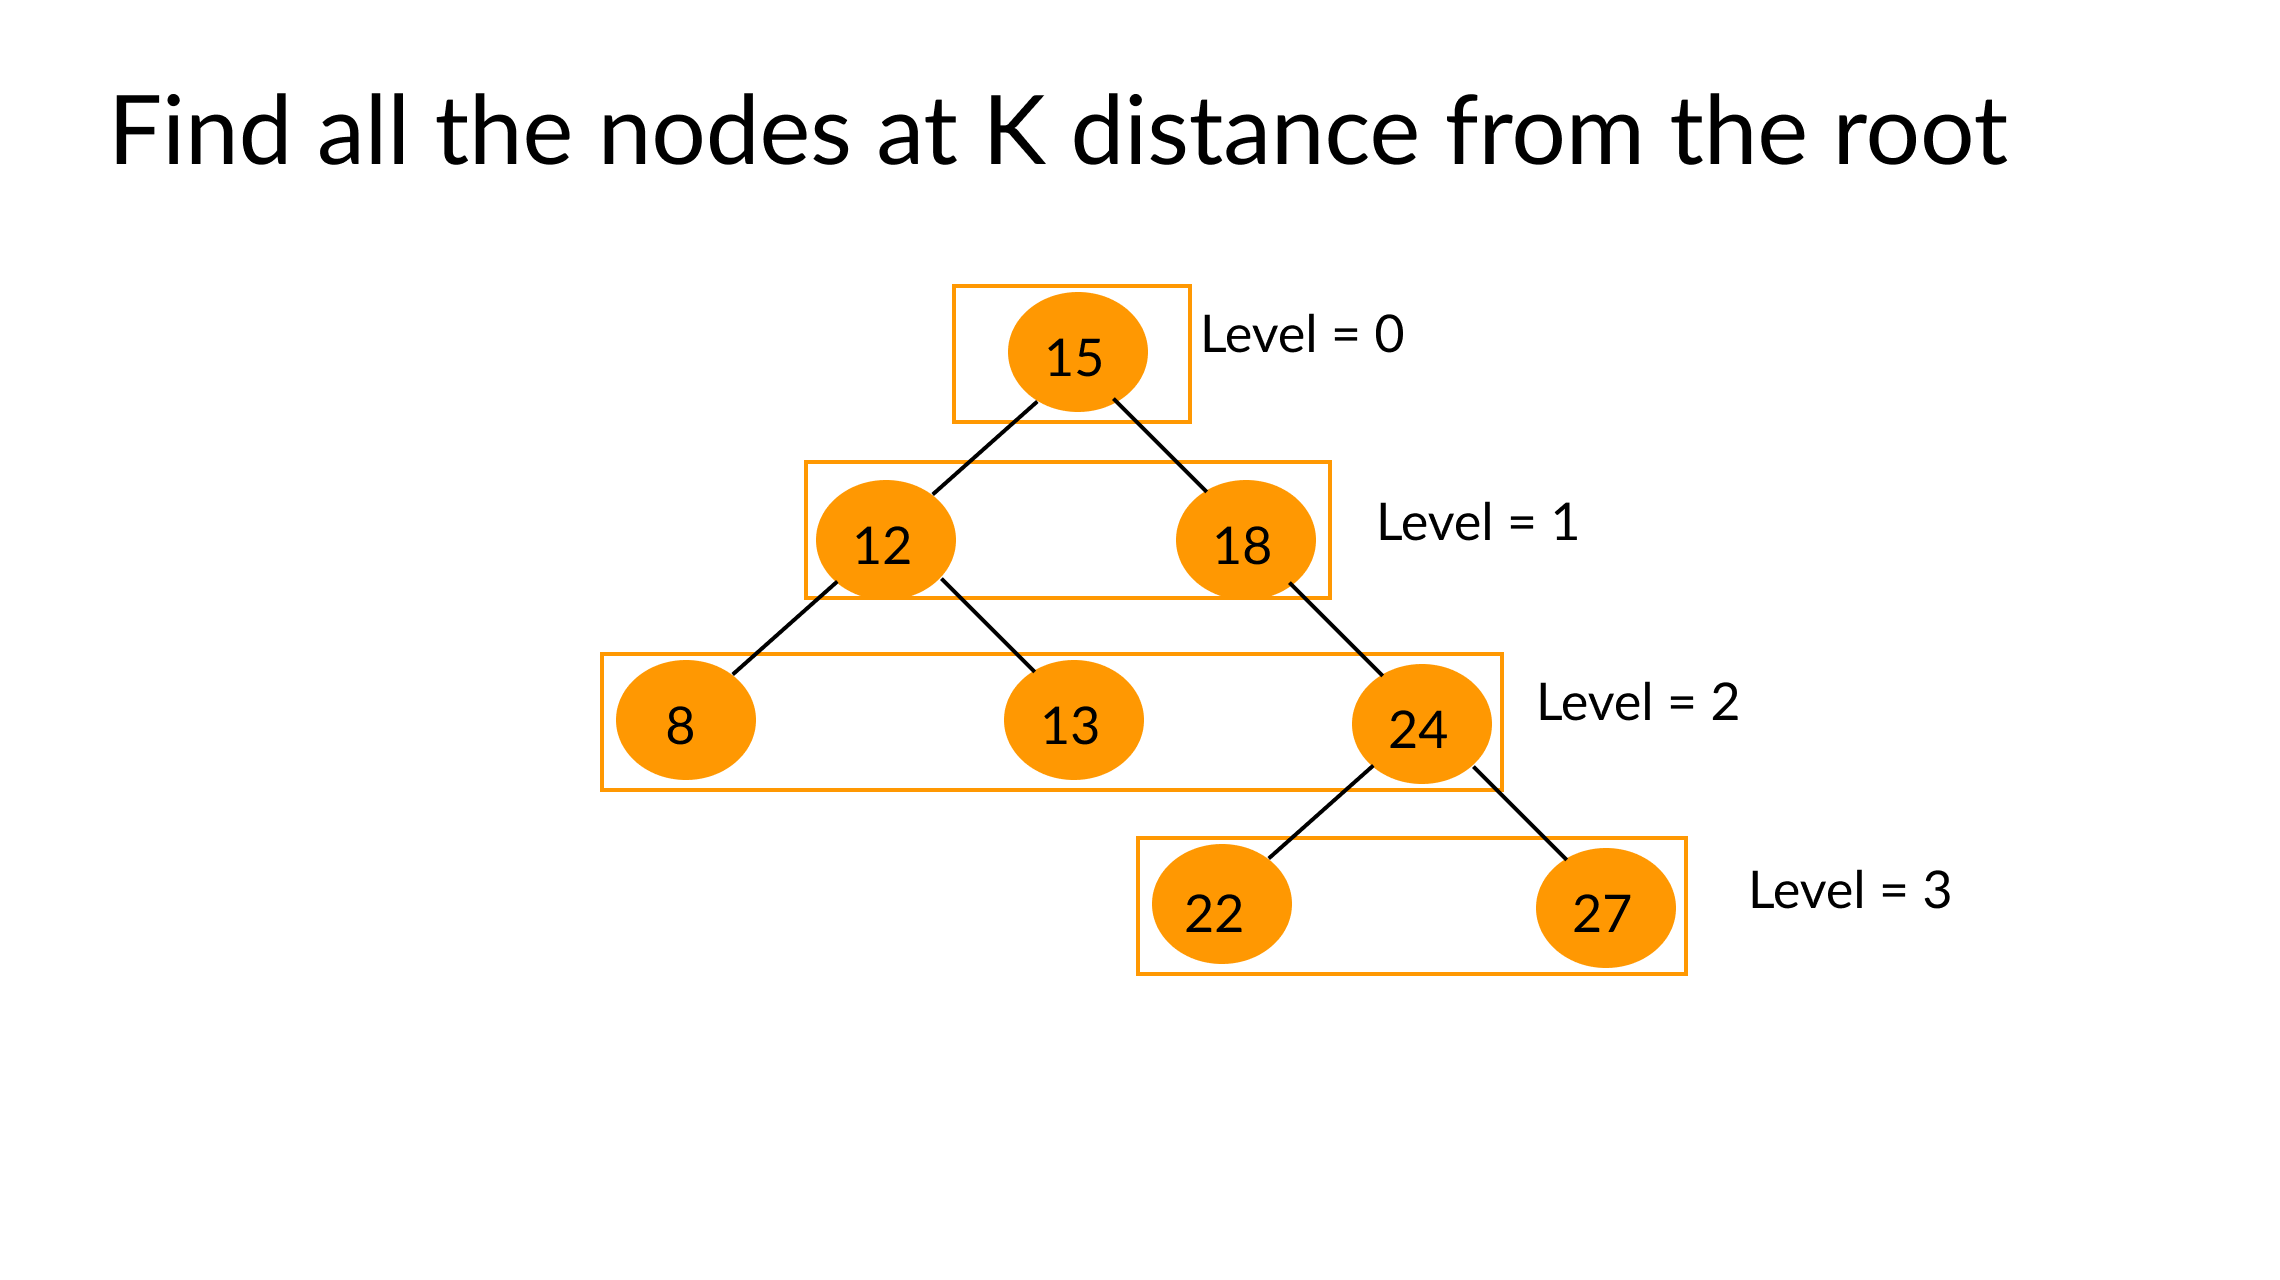 find all the nodes at k distance from the root